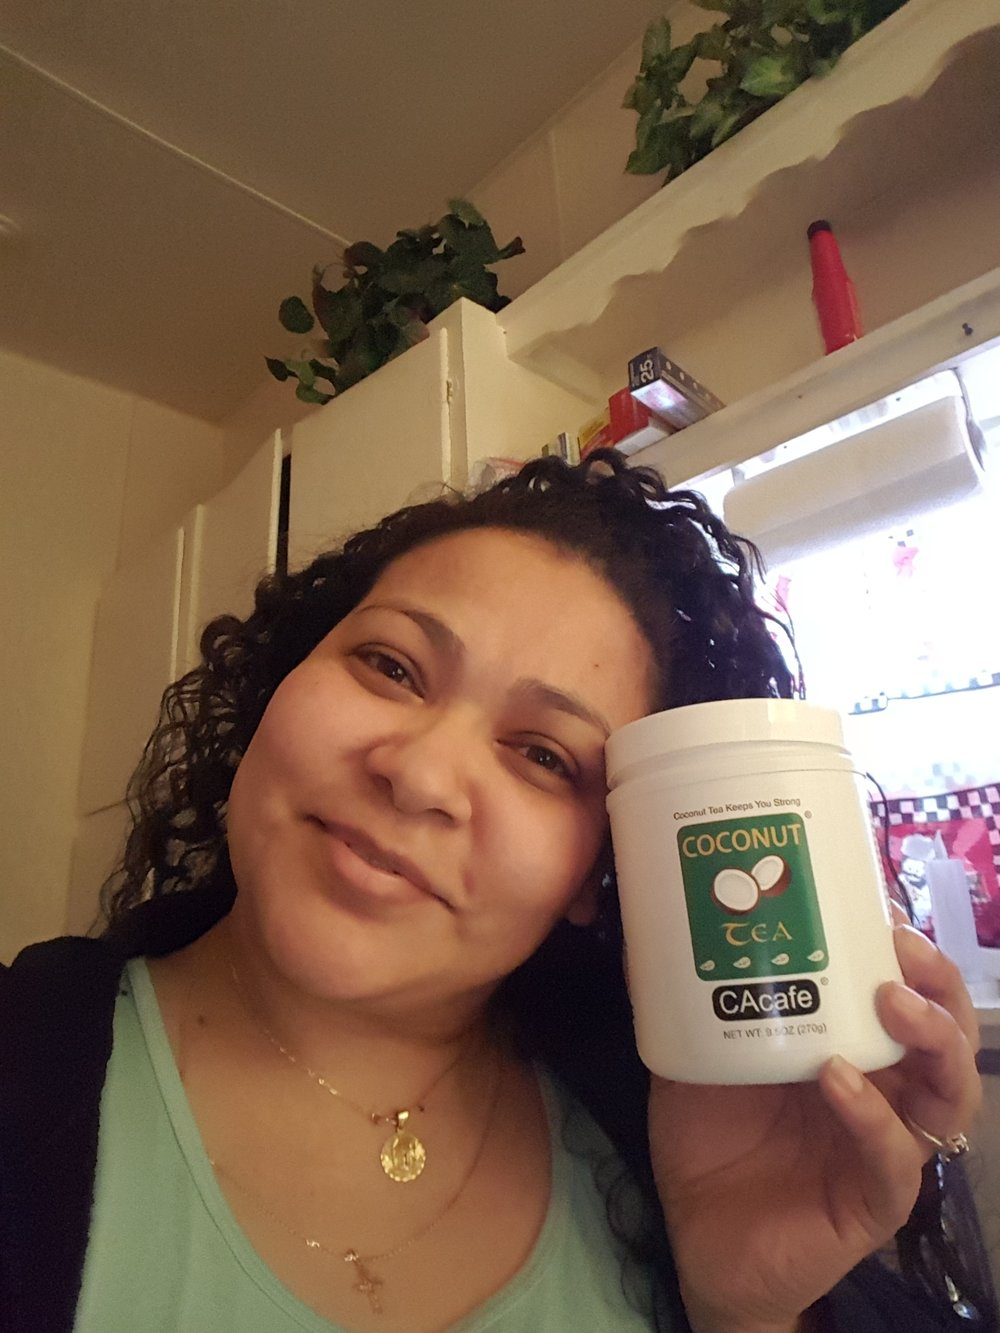 CAcafe customer loves coconut tea, helps with hair loss!